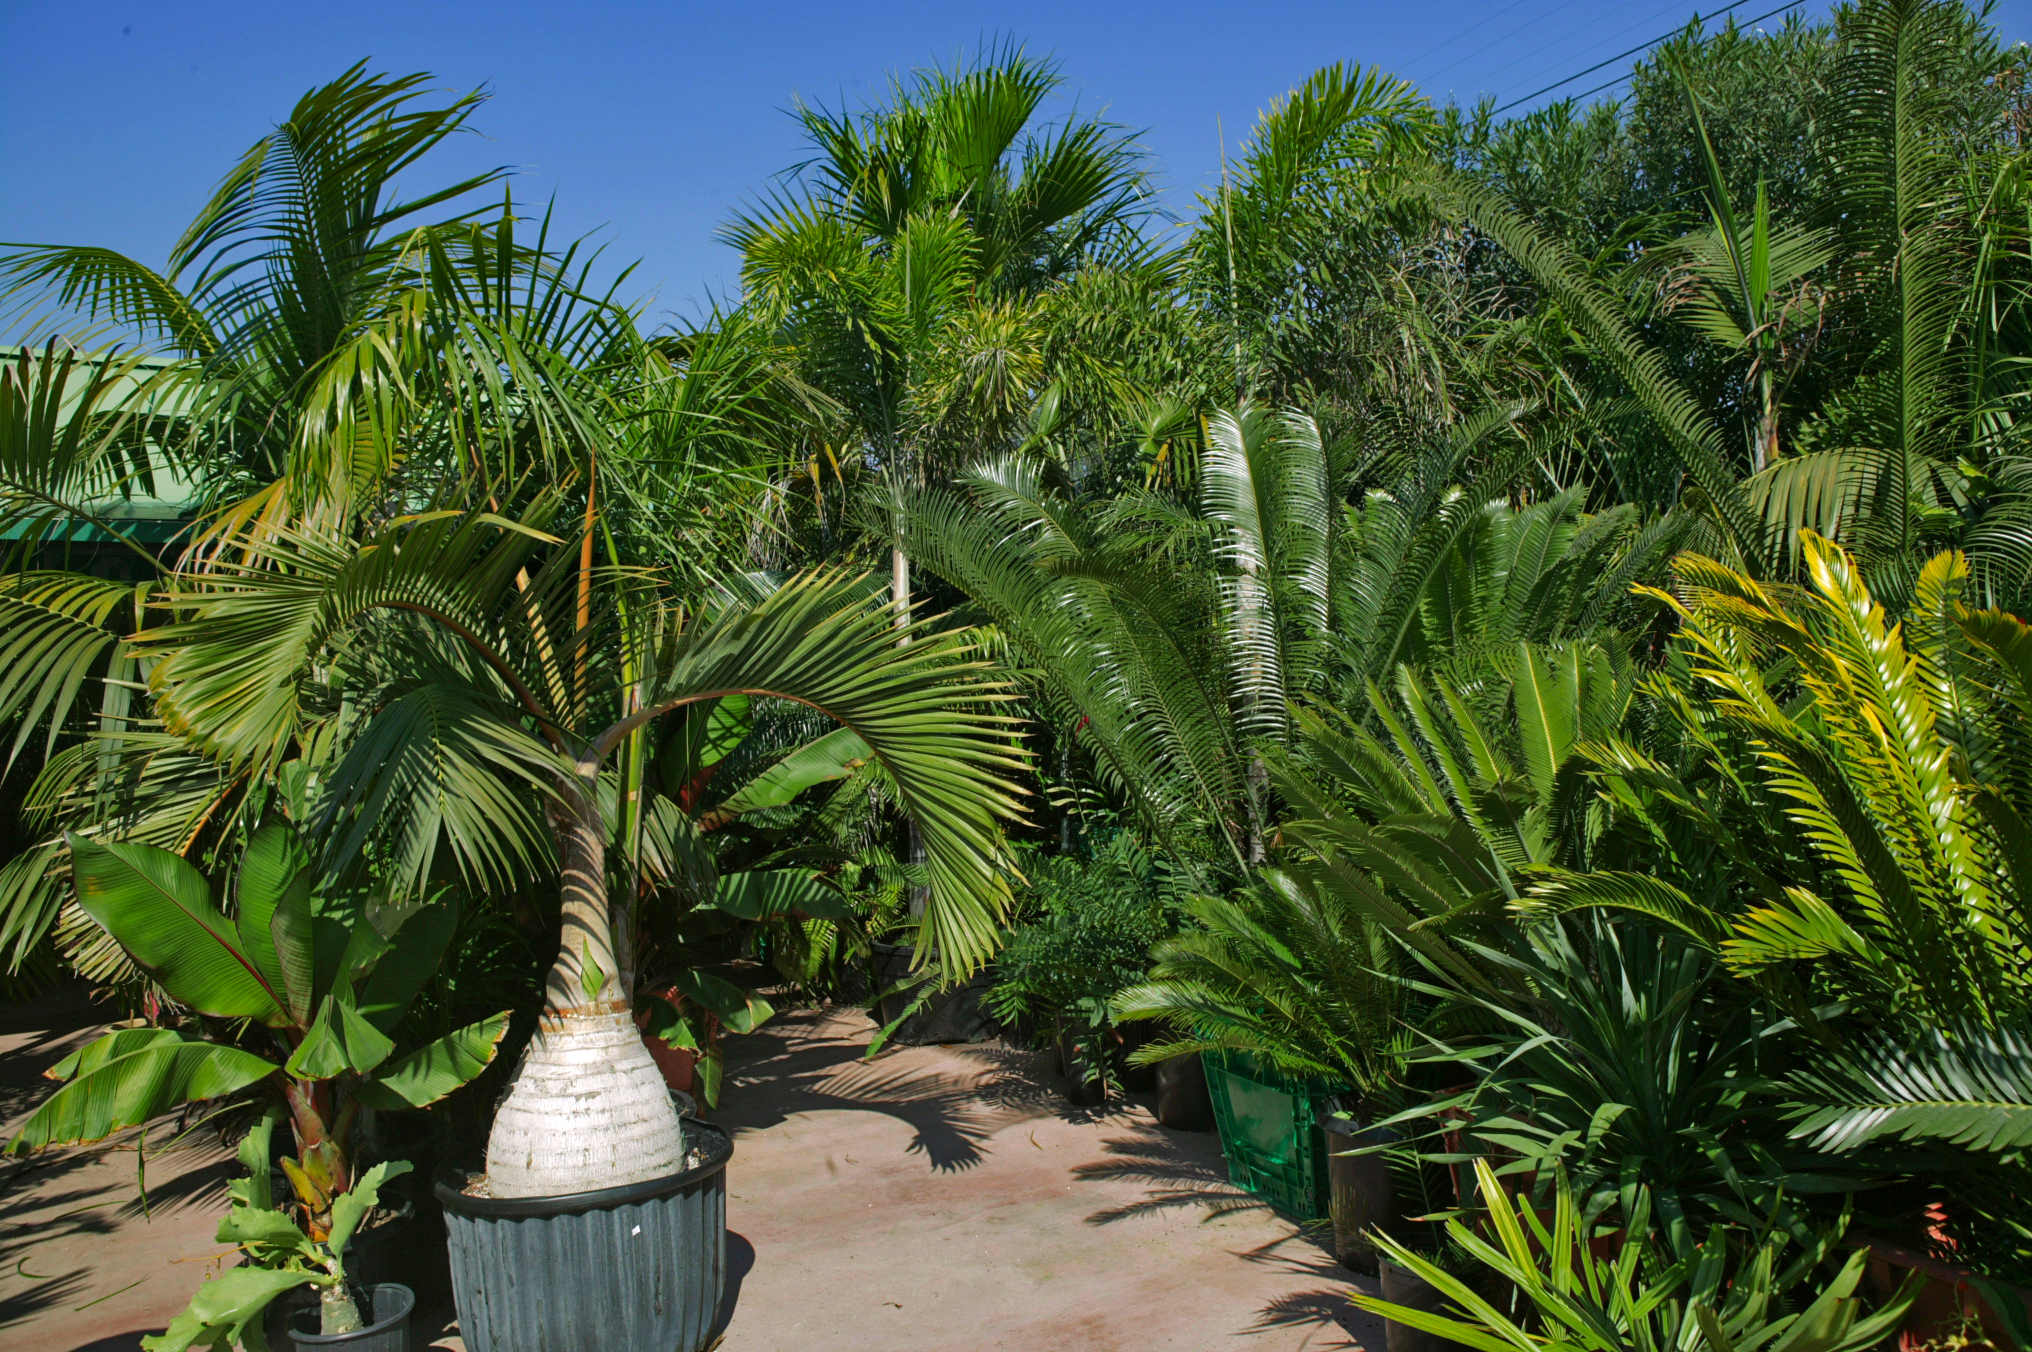 Tour Of Jungle Music Palms Cycads Tropical Plants